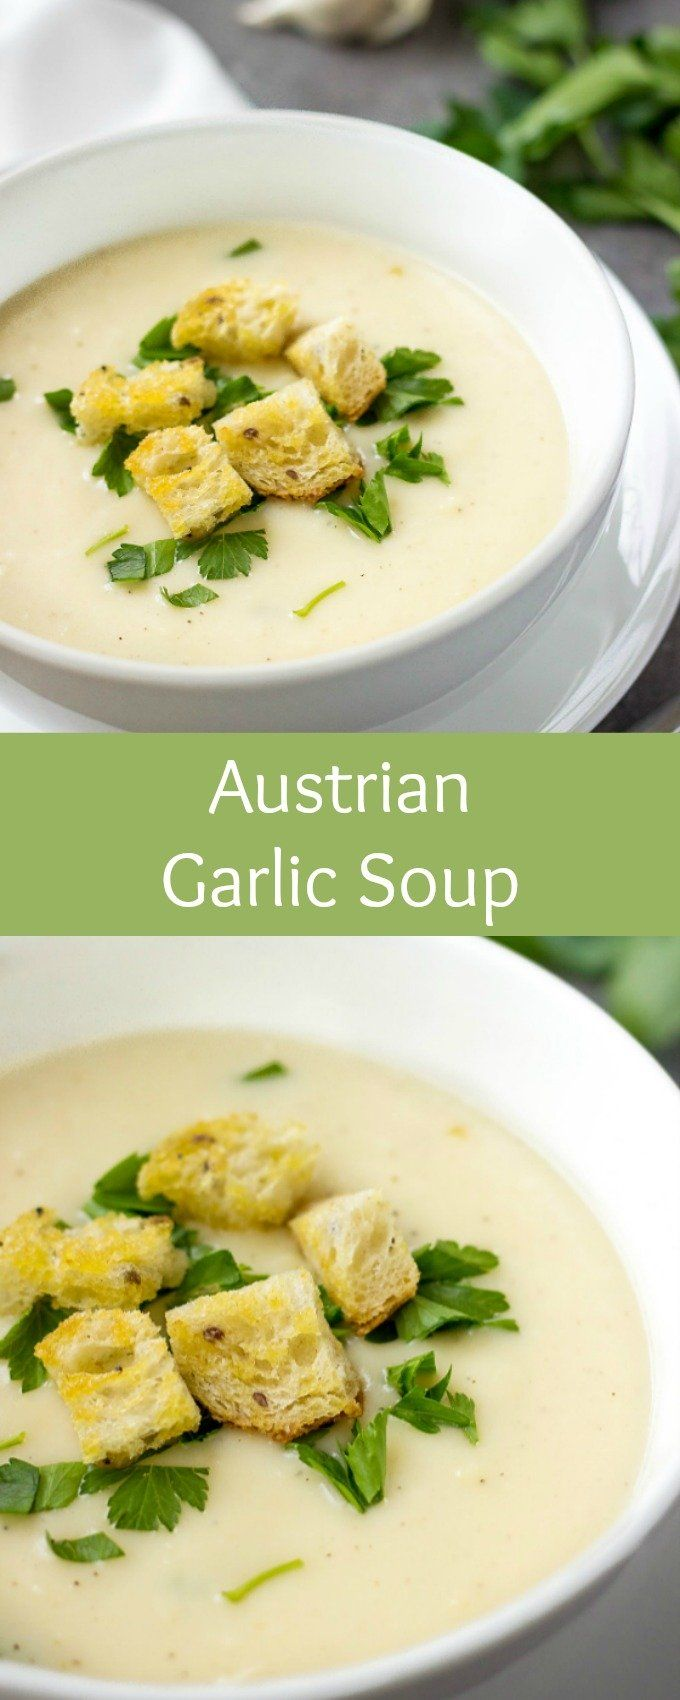 Austrian Garlic Soup is the easiest and most delicious recipe you'll ever need. Made in under 15 minutes. You'll lick the bowl and ask for more!